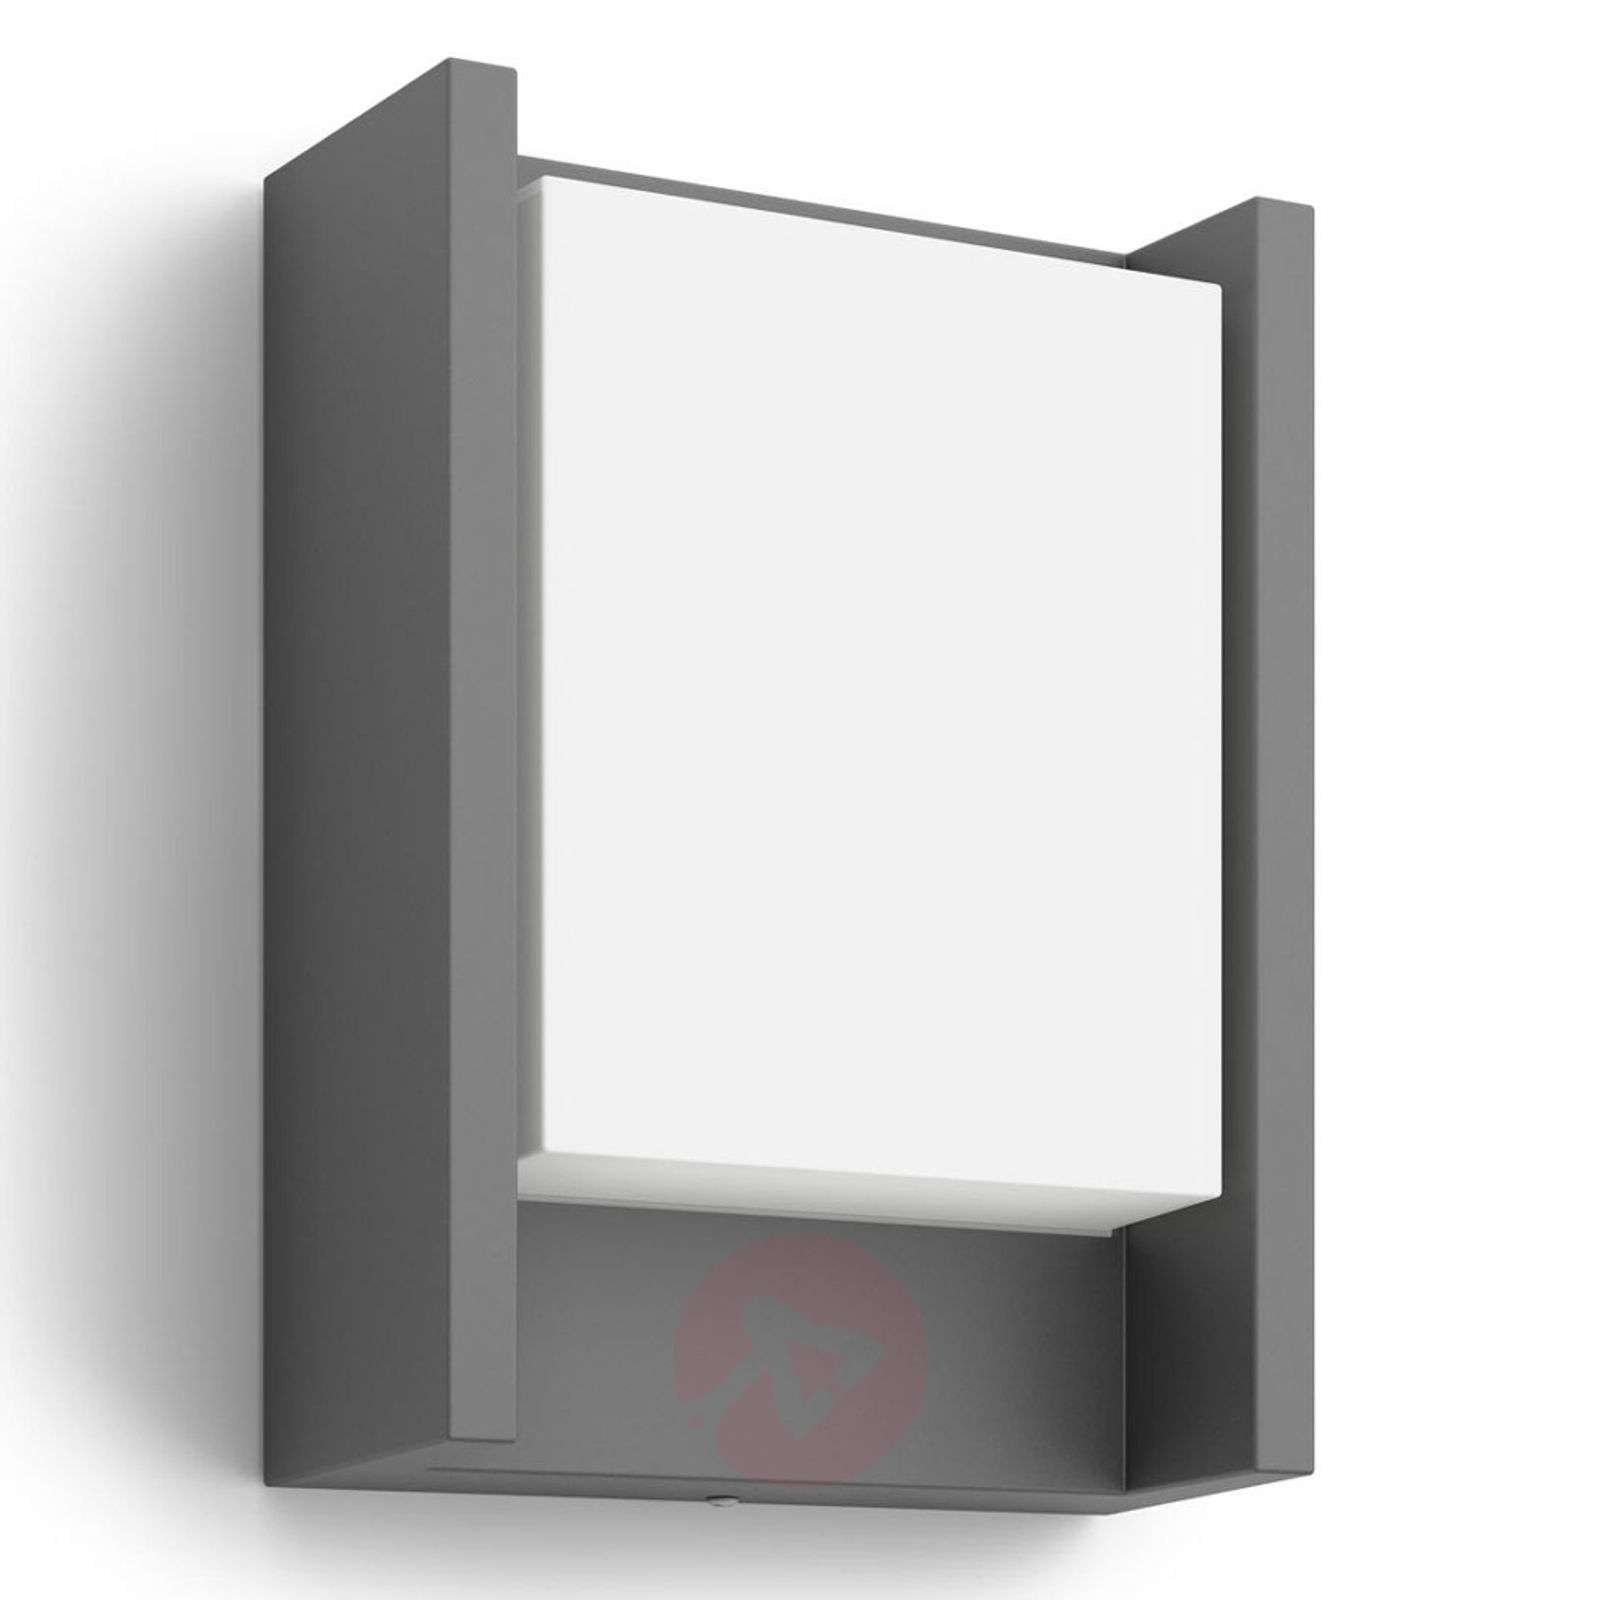 Anthracite-coloured LED outdoor wall light Arbour-7531800-01